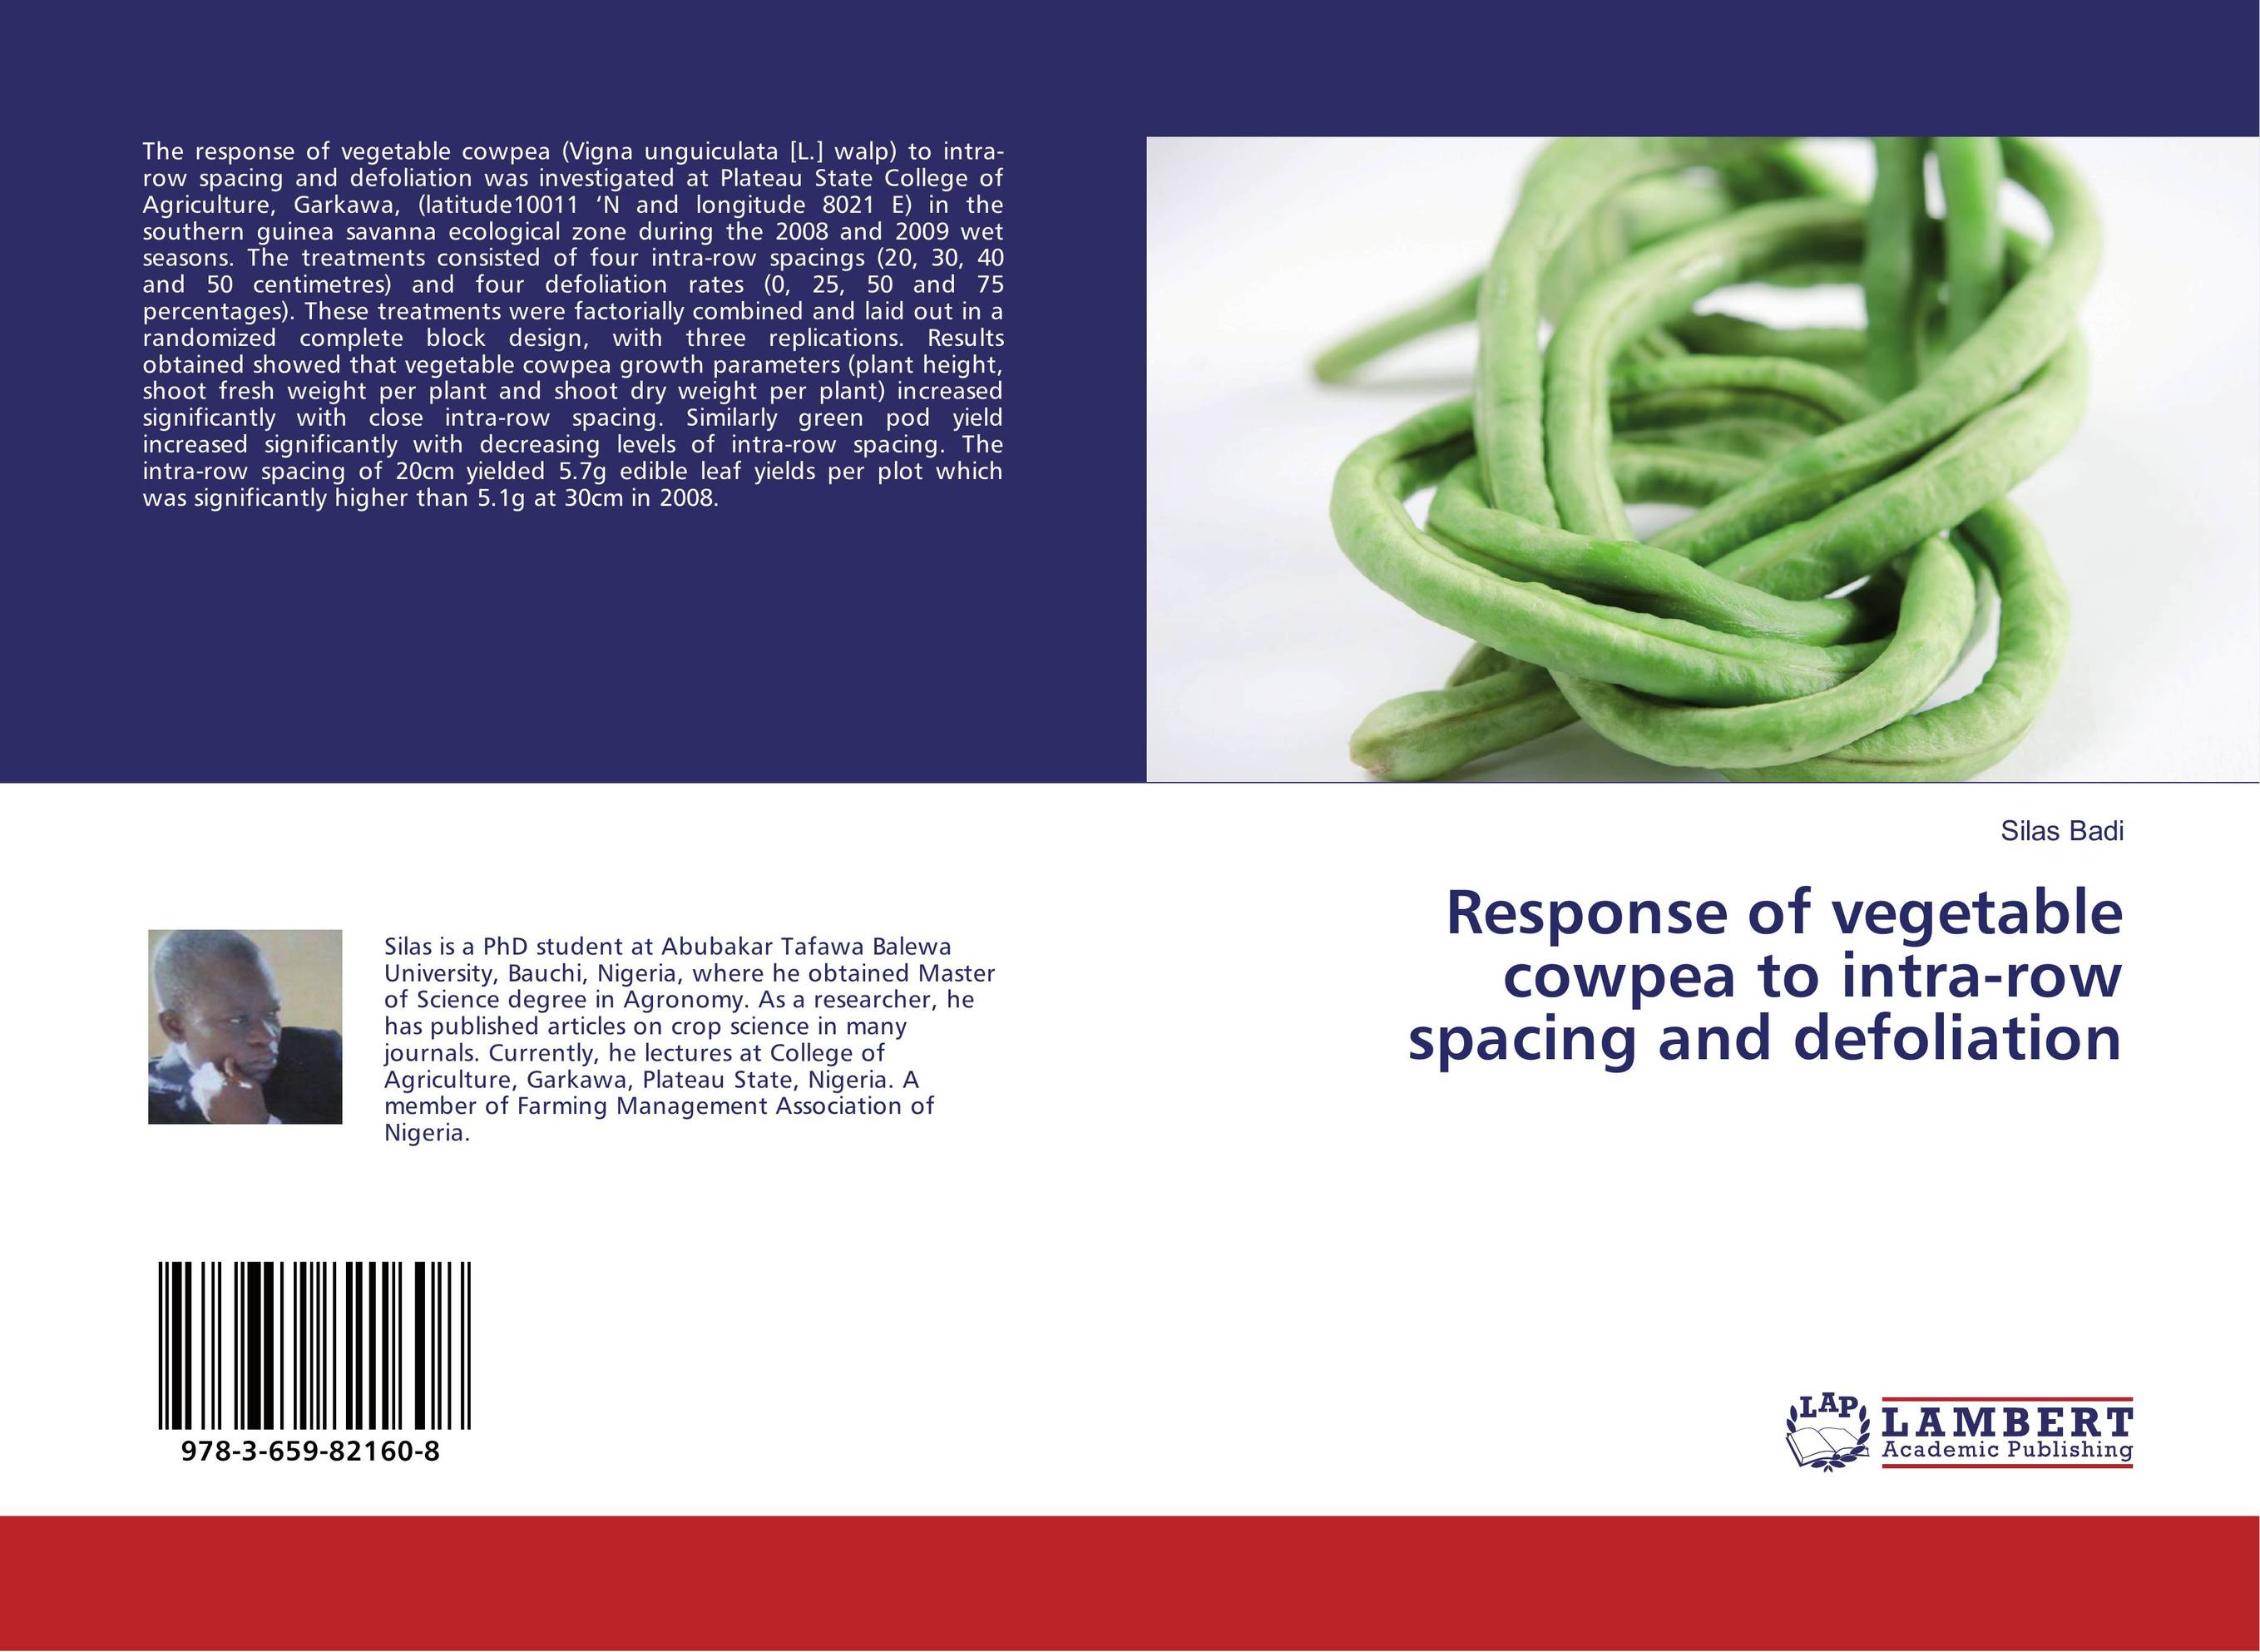 Response of vegetable cowpea to intra-row spacing and defoliation yemane kahsay intra row spacing and variety effects on onion at aksum ethiopia